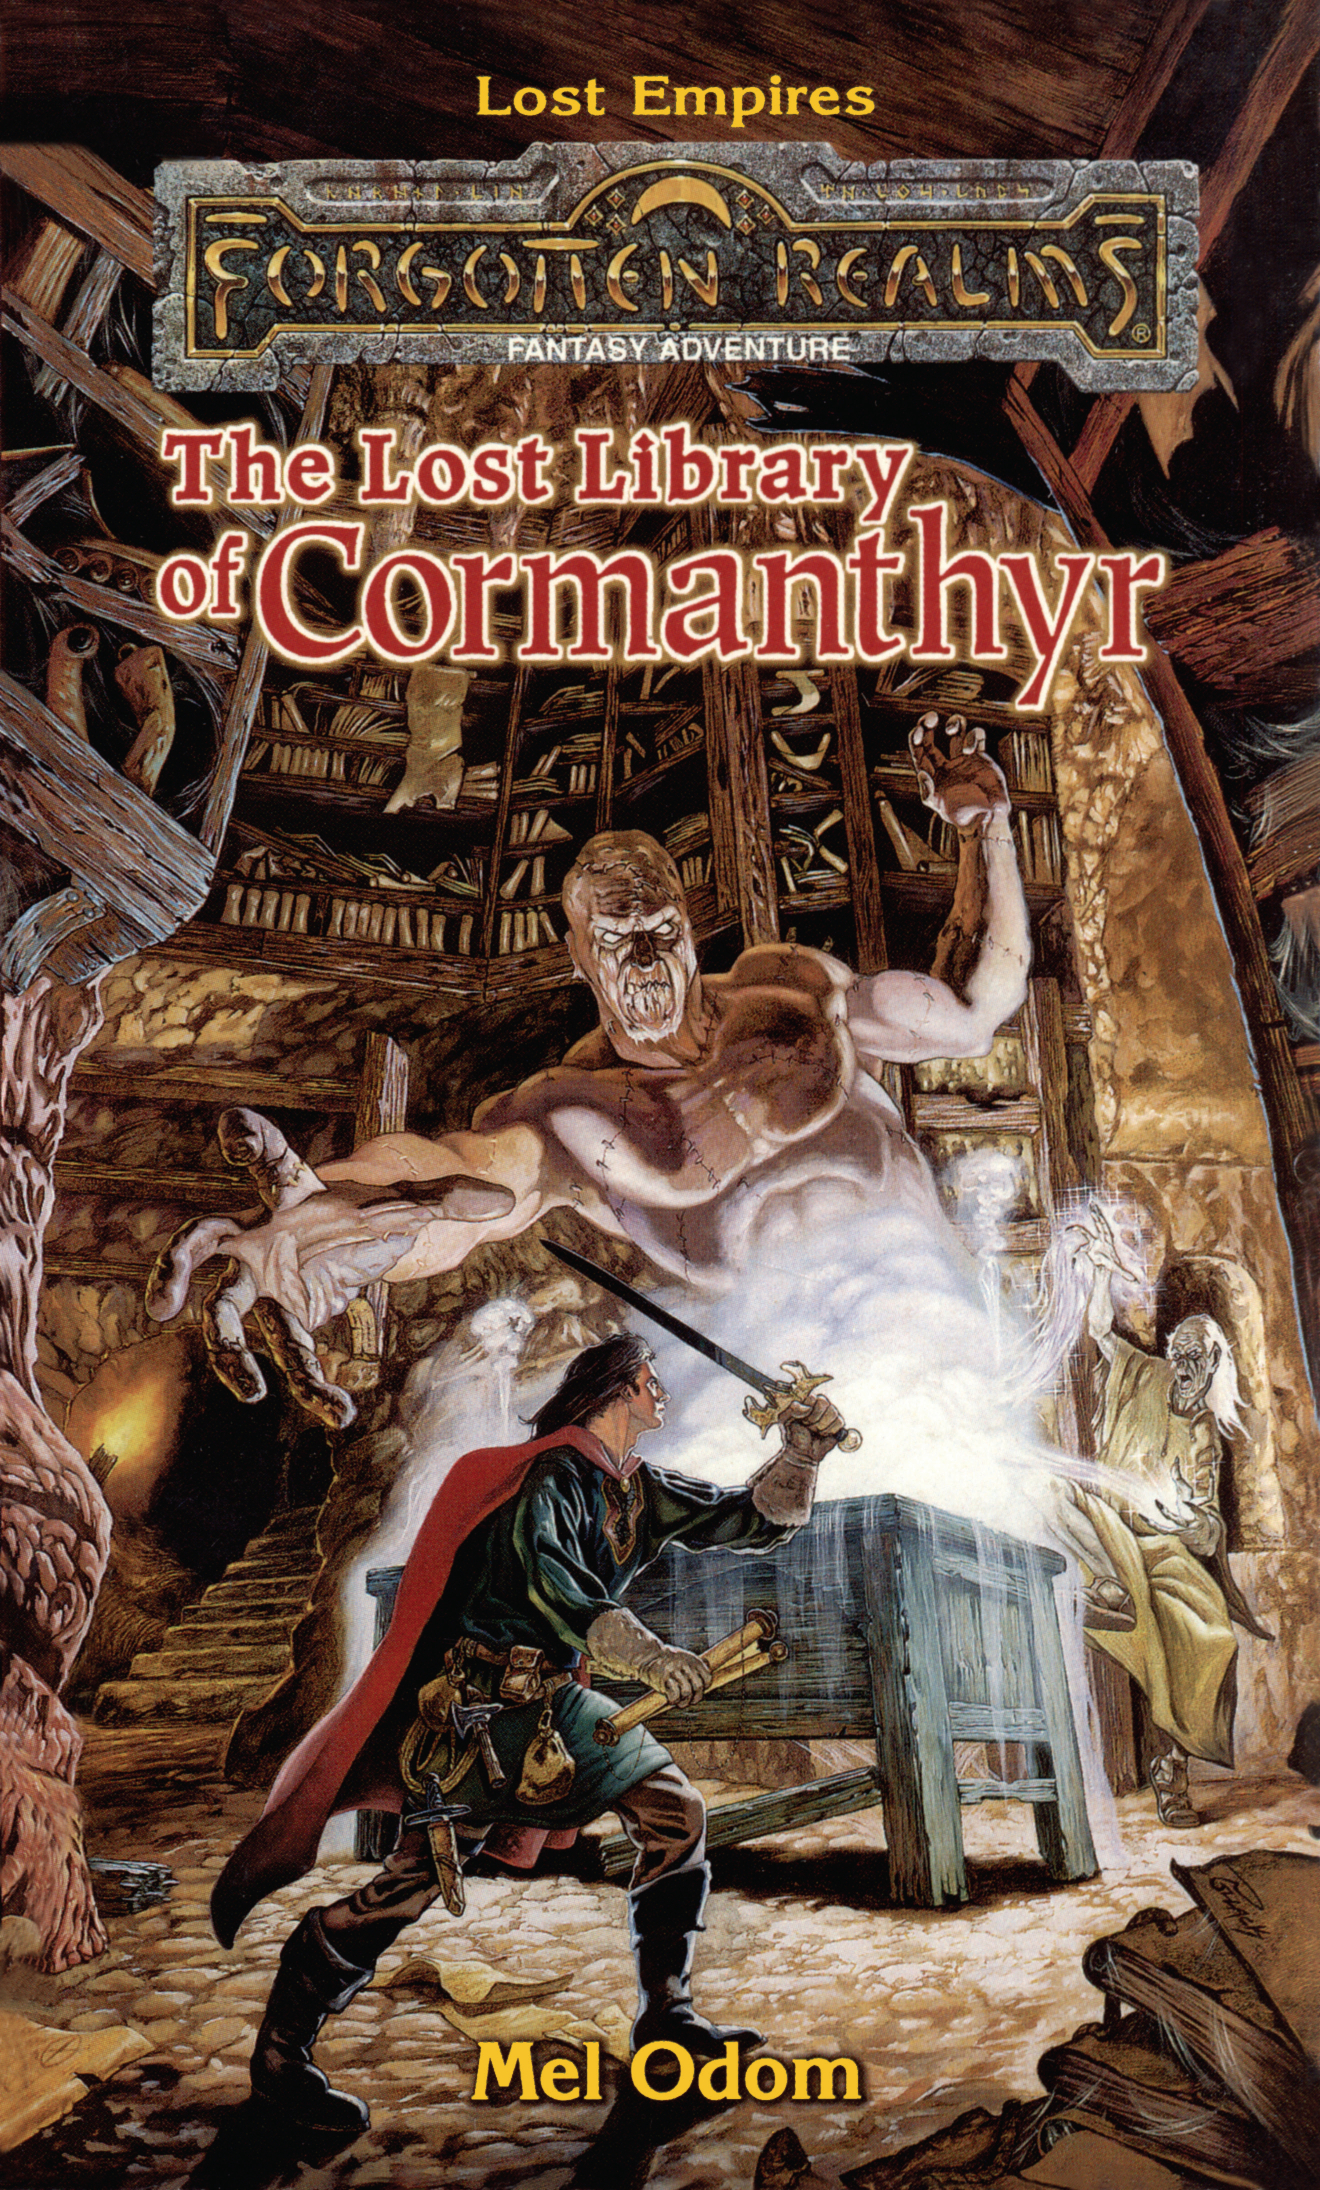 File:The Lost Library of Cormanthyr.jpg